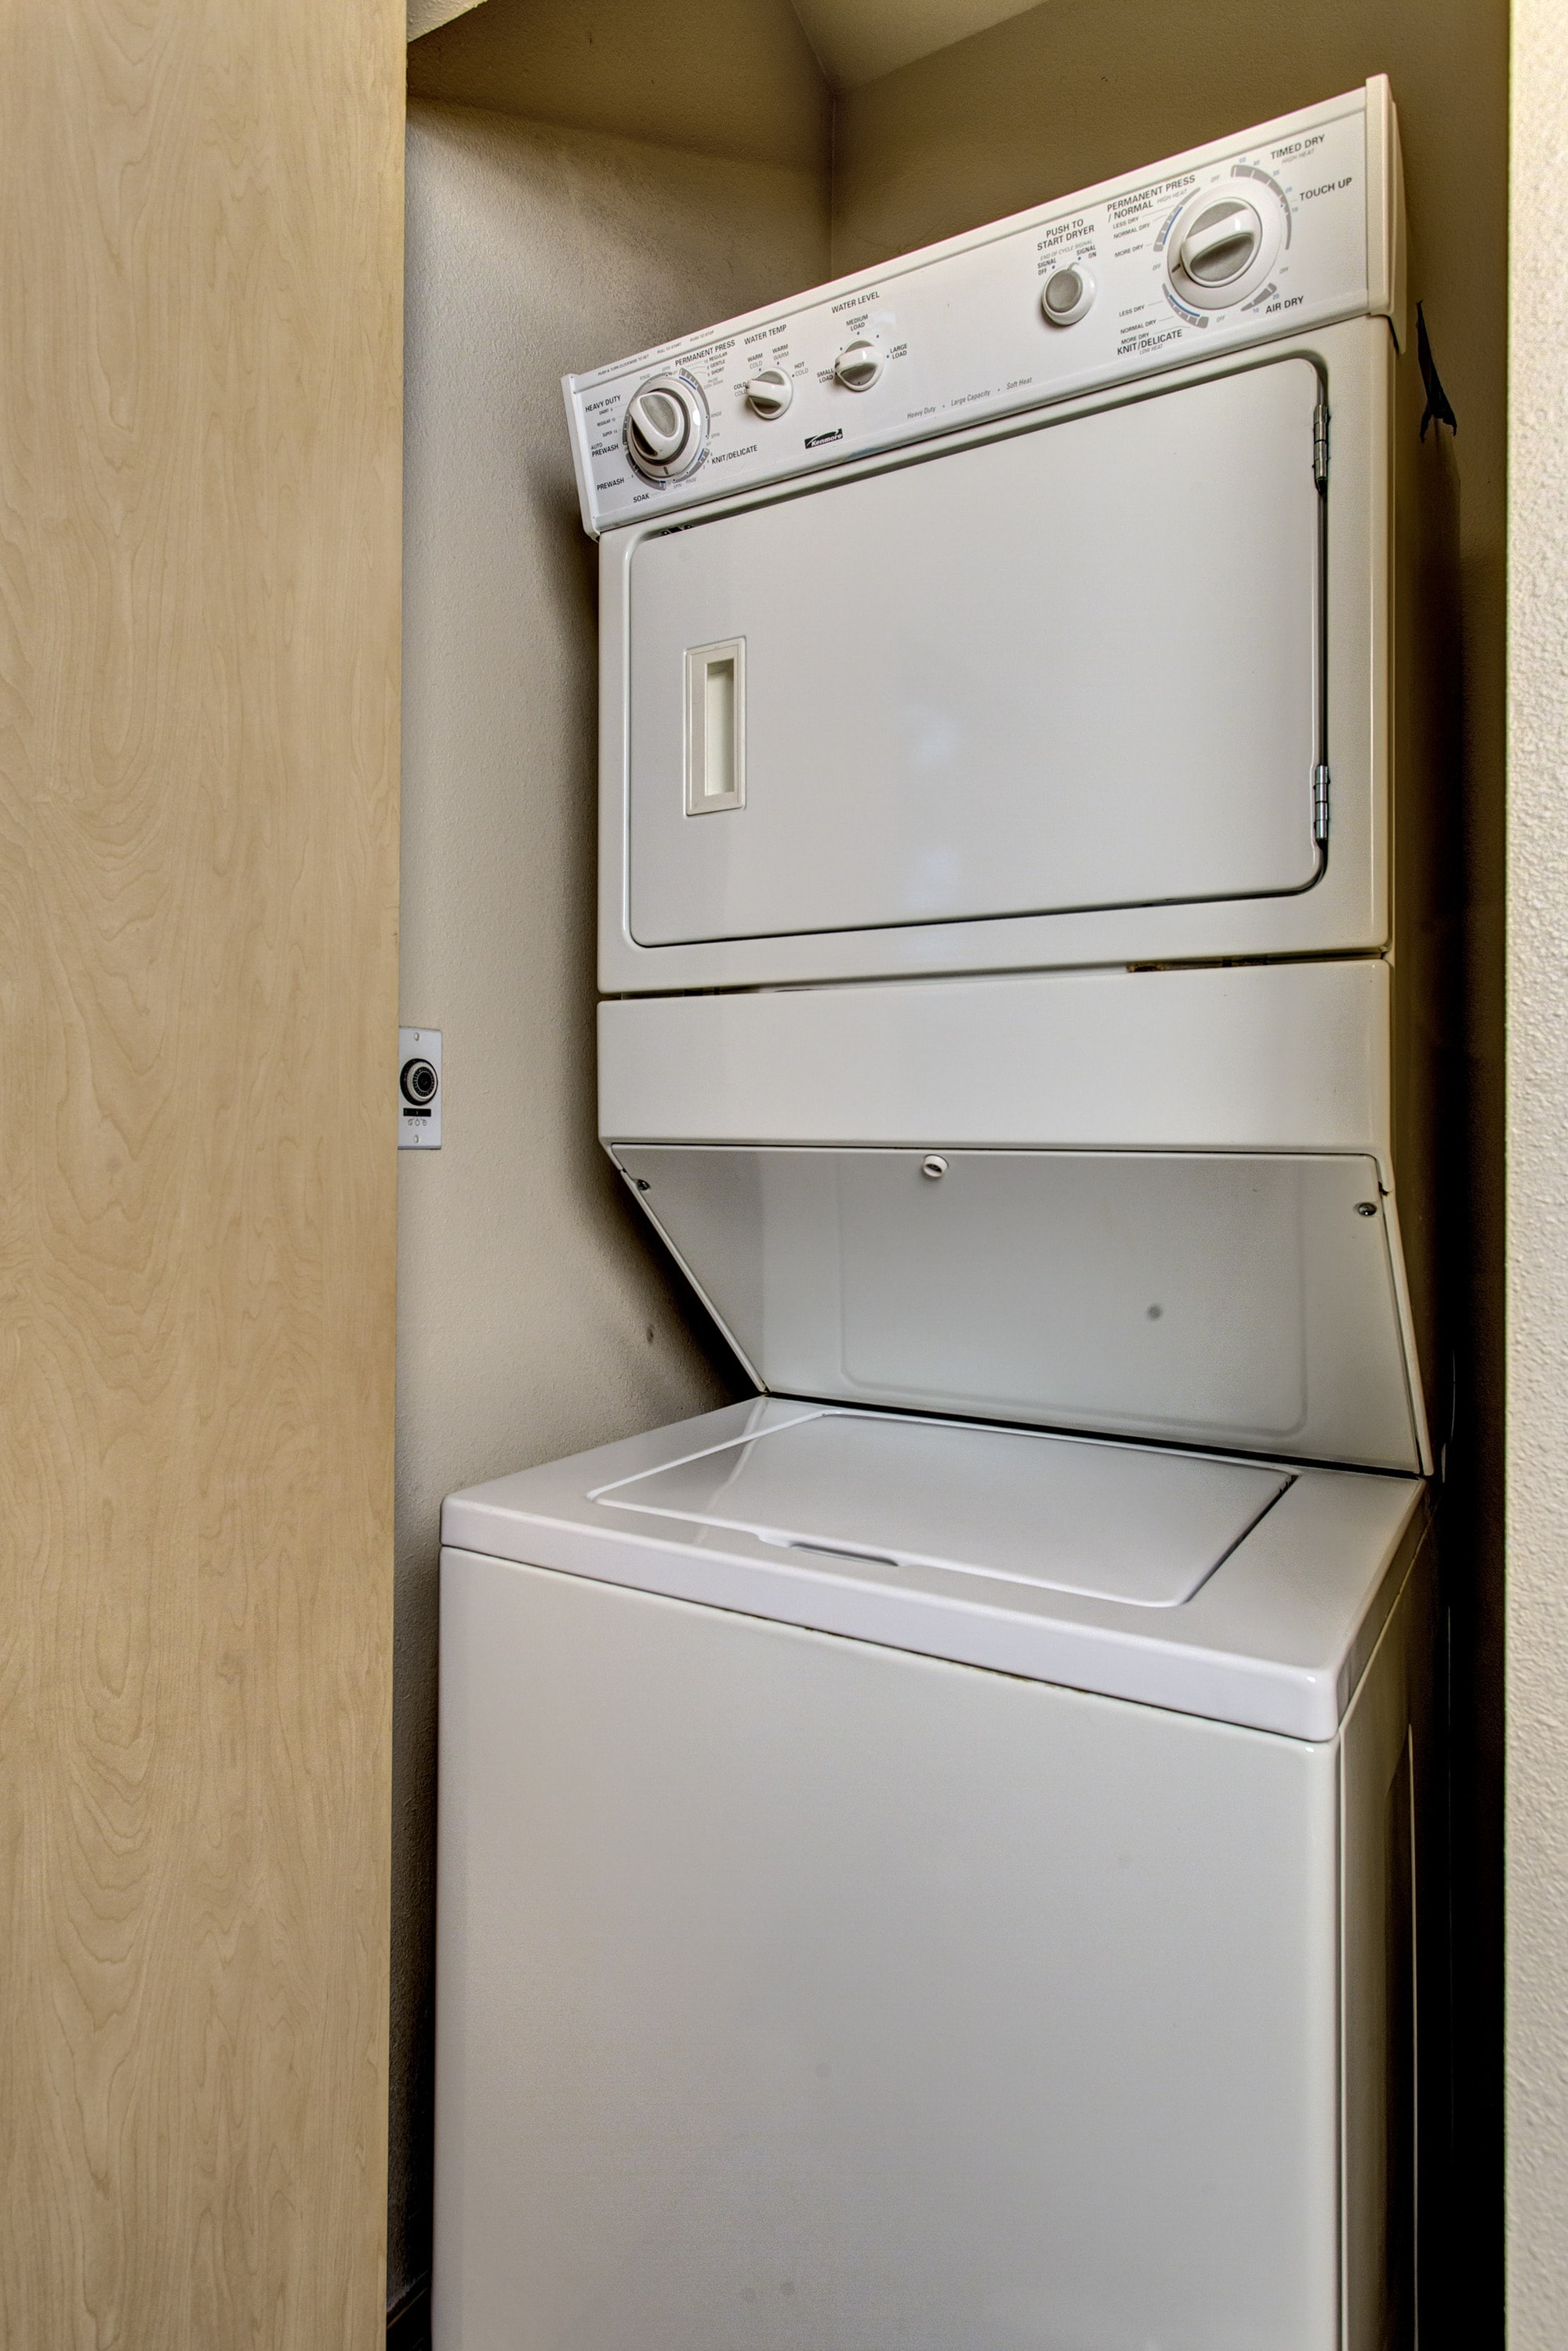 Stackable washer and dryer saves you a trip to the laundromat.